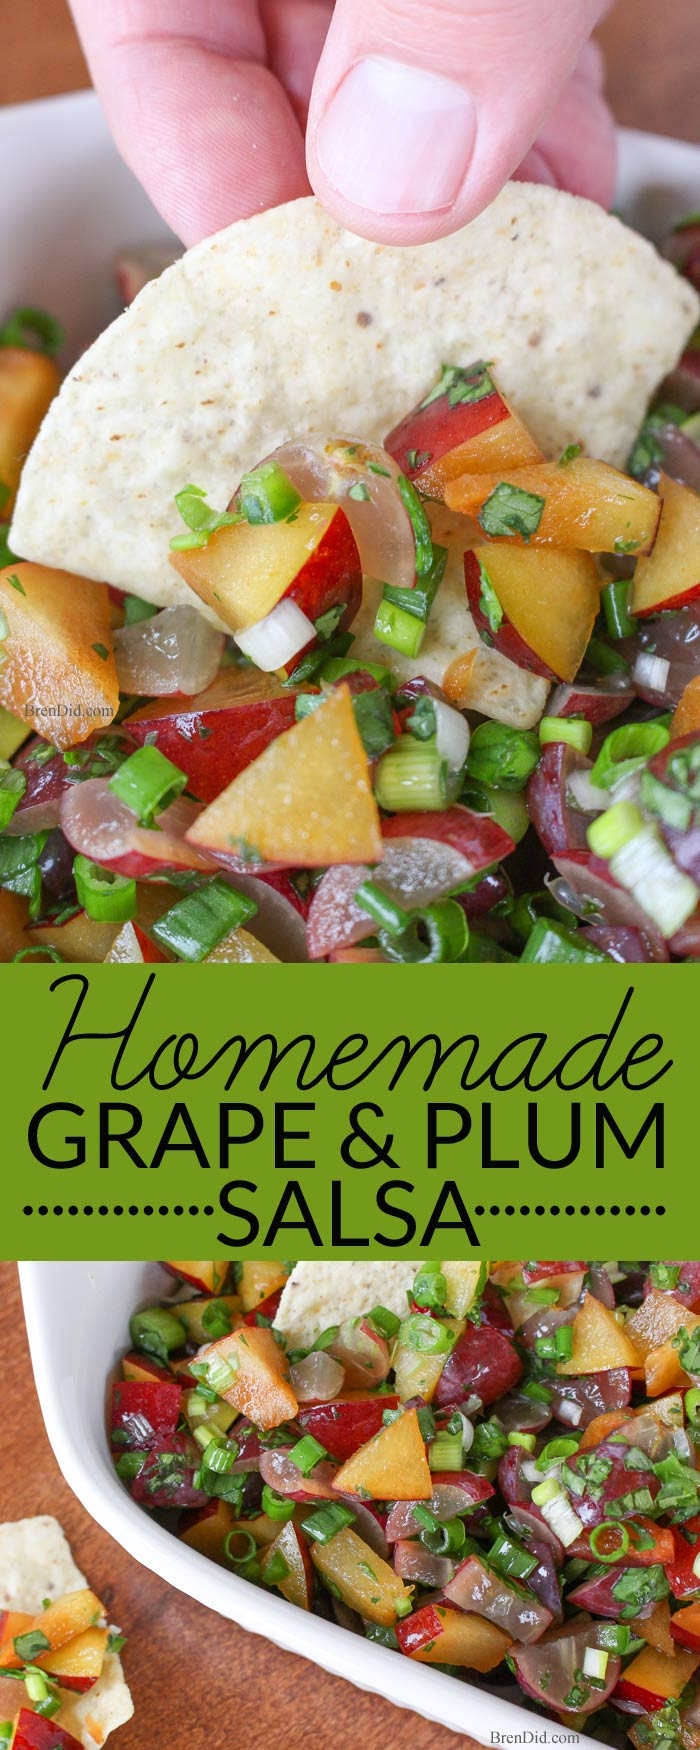 Must try for the Super Bowl or New Year's Eve! Grape and plum homemade salsa is a great alternative to basic chips and dip. Spicy sweetness make it the perfect easy appetizer. Great for parties and the star of Super Bowl snacks.